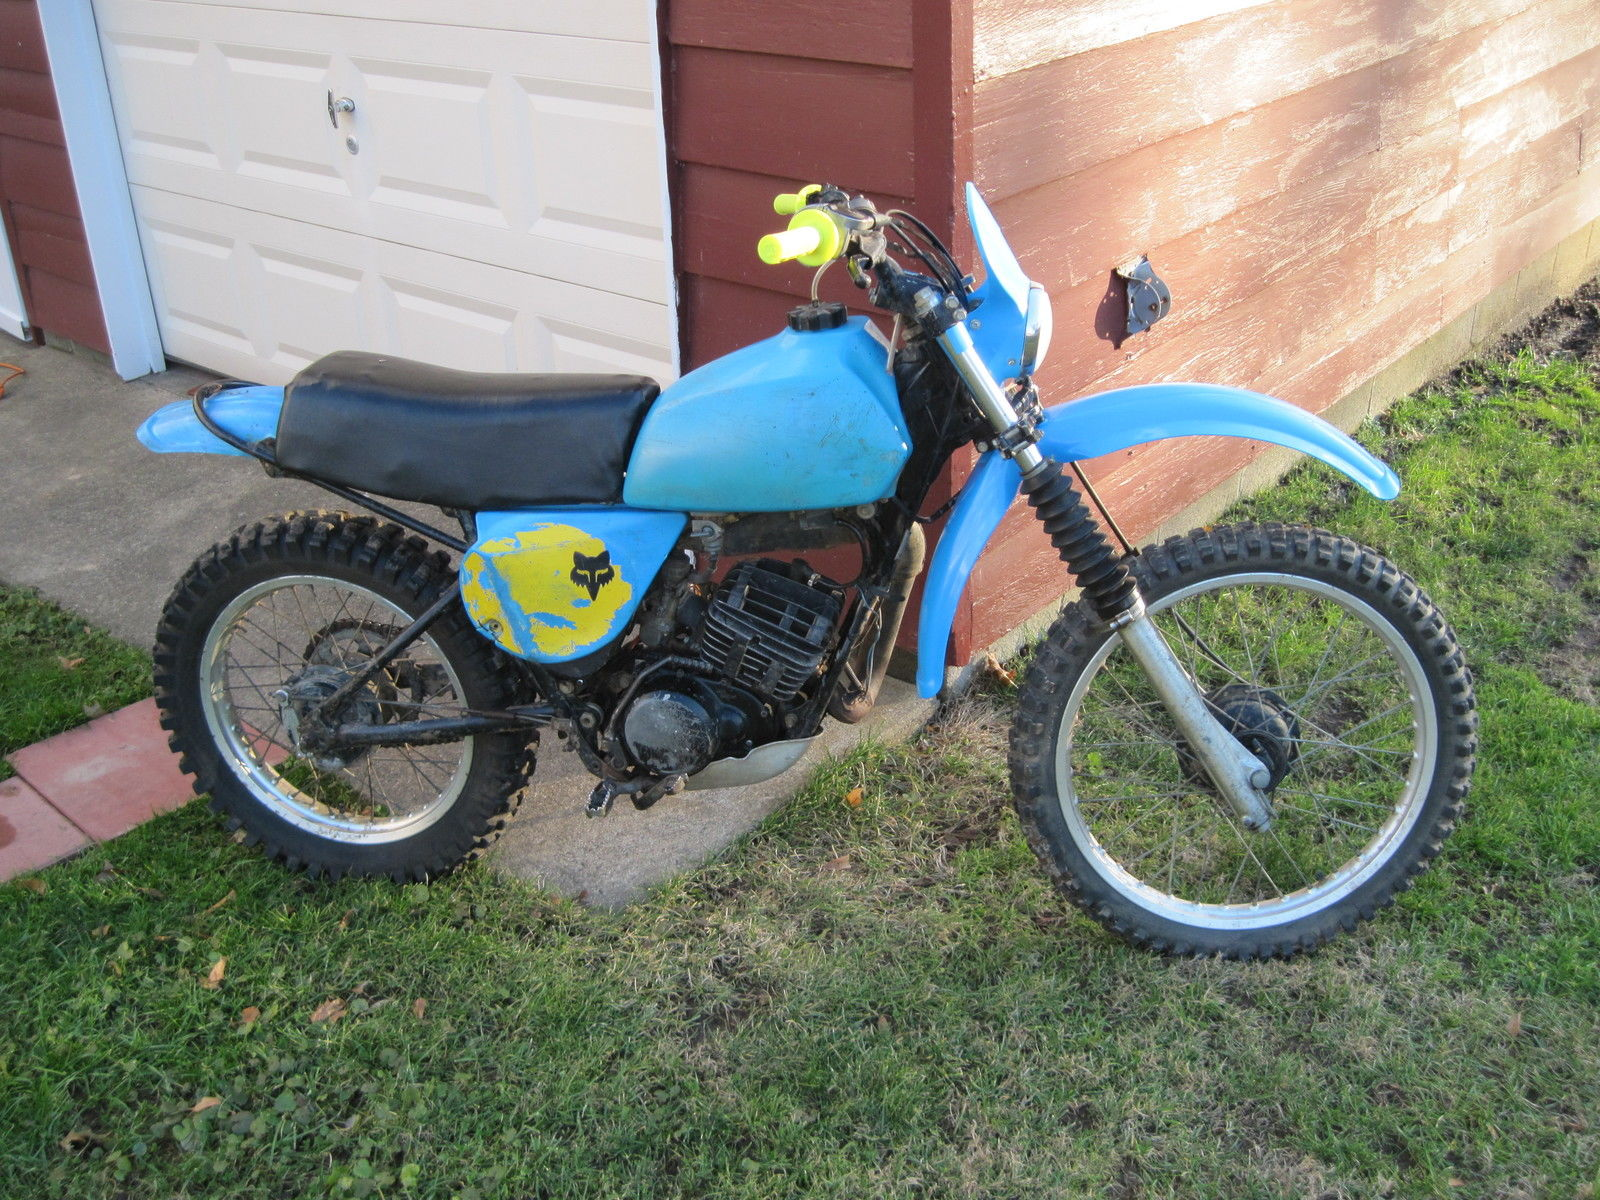 89 1979 Yamaha Parts Twin Engine Wiring Images Gallery Yz250 Diagram It 175 Nice Original Bike Fast And Reliasble Many New No Reserve